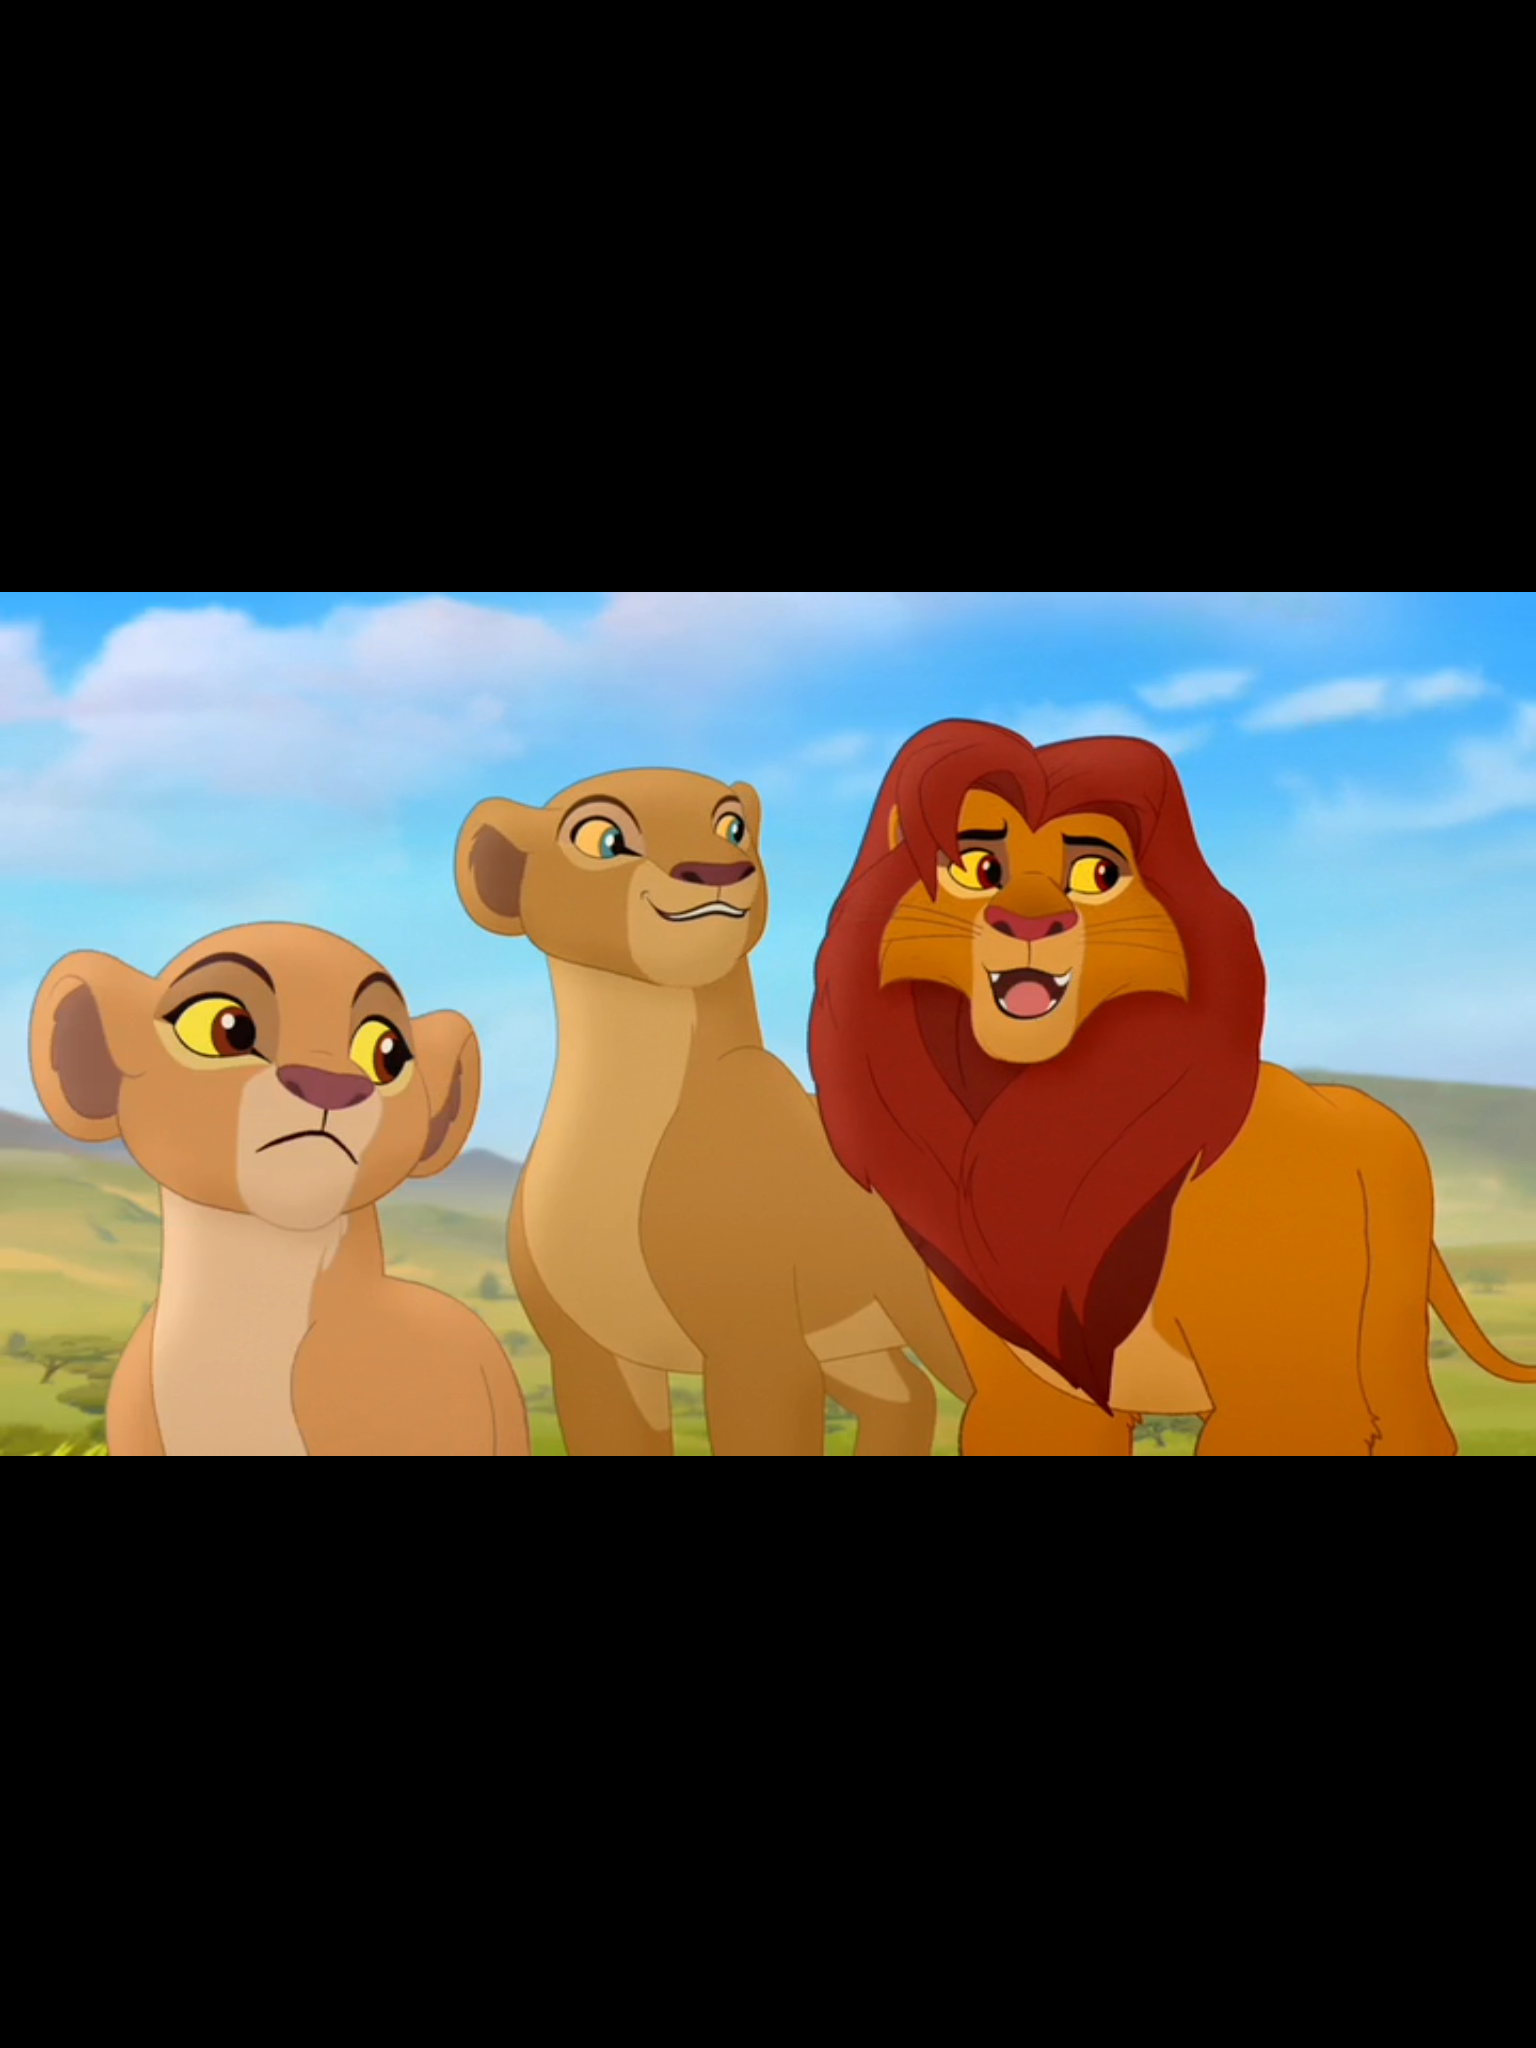 King Simba And Queen Nala With Their Daughter Princess Kiara From The Lion Guard Lion King Art Disney Lion King The Lion King 1994